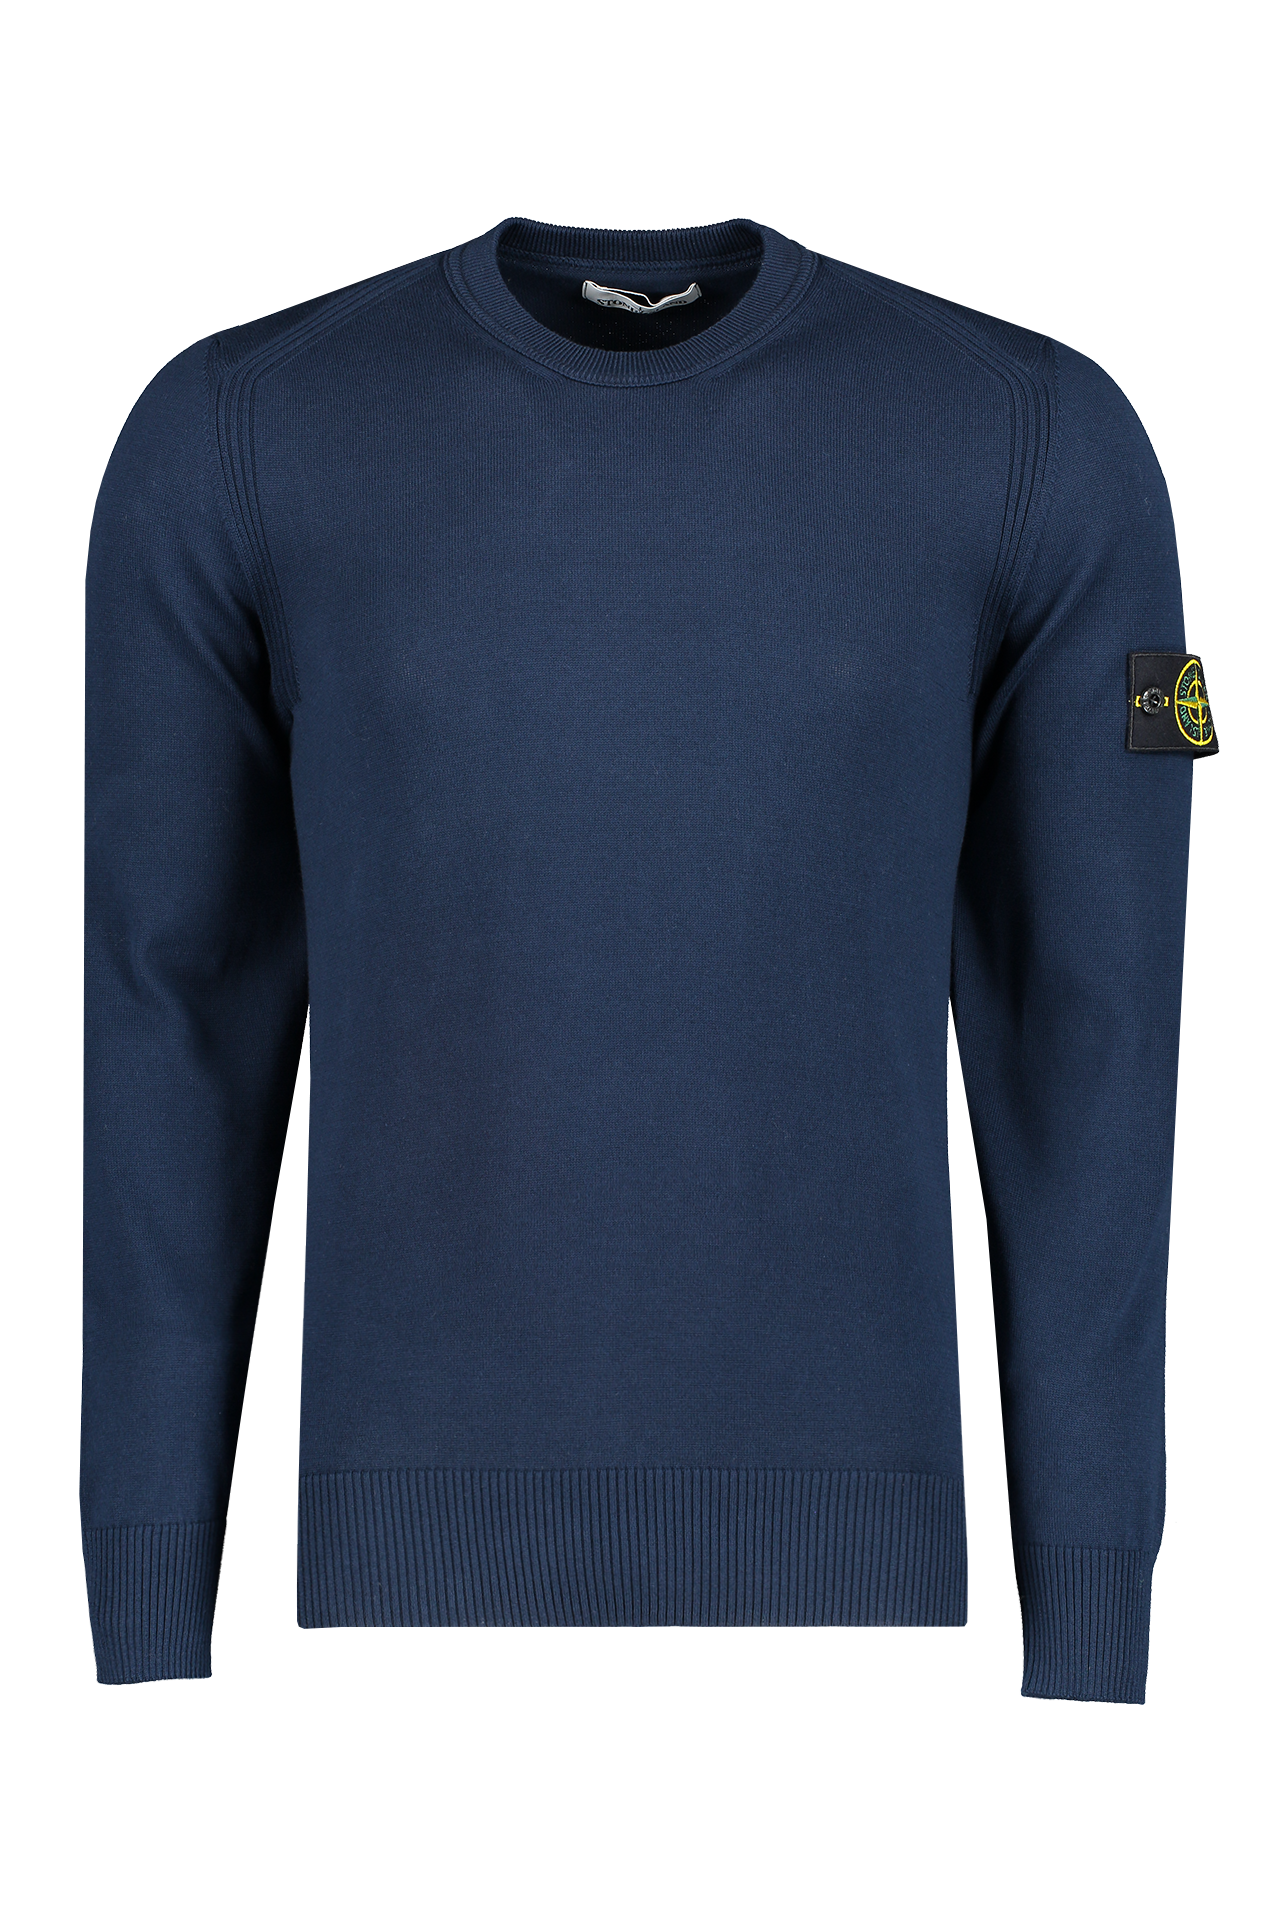 Front Image of Stone Island Long Sleeve Knit Blue Marine